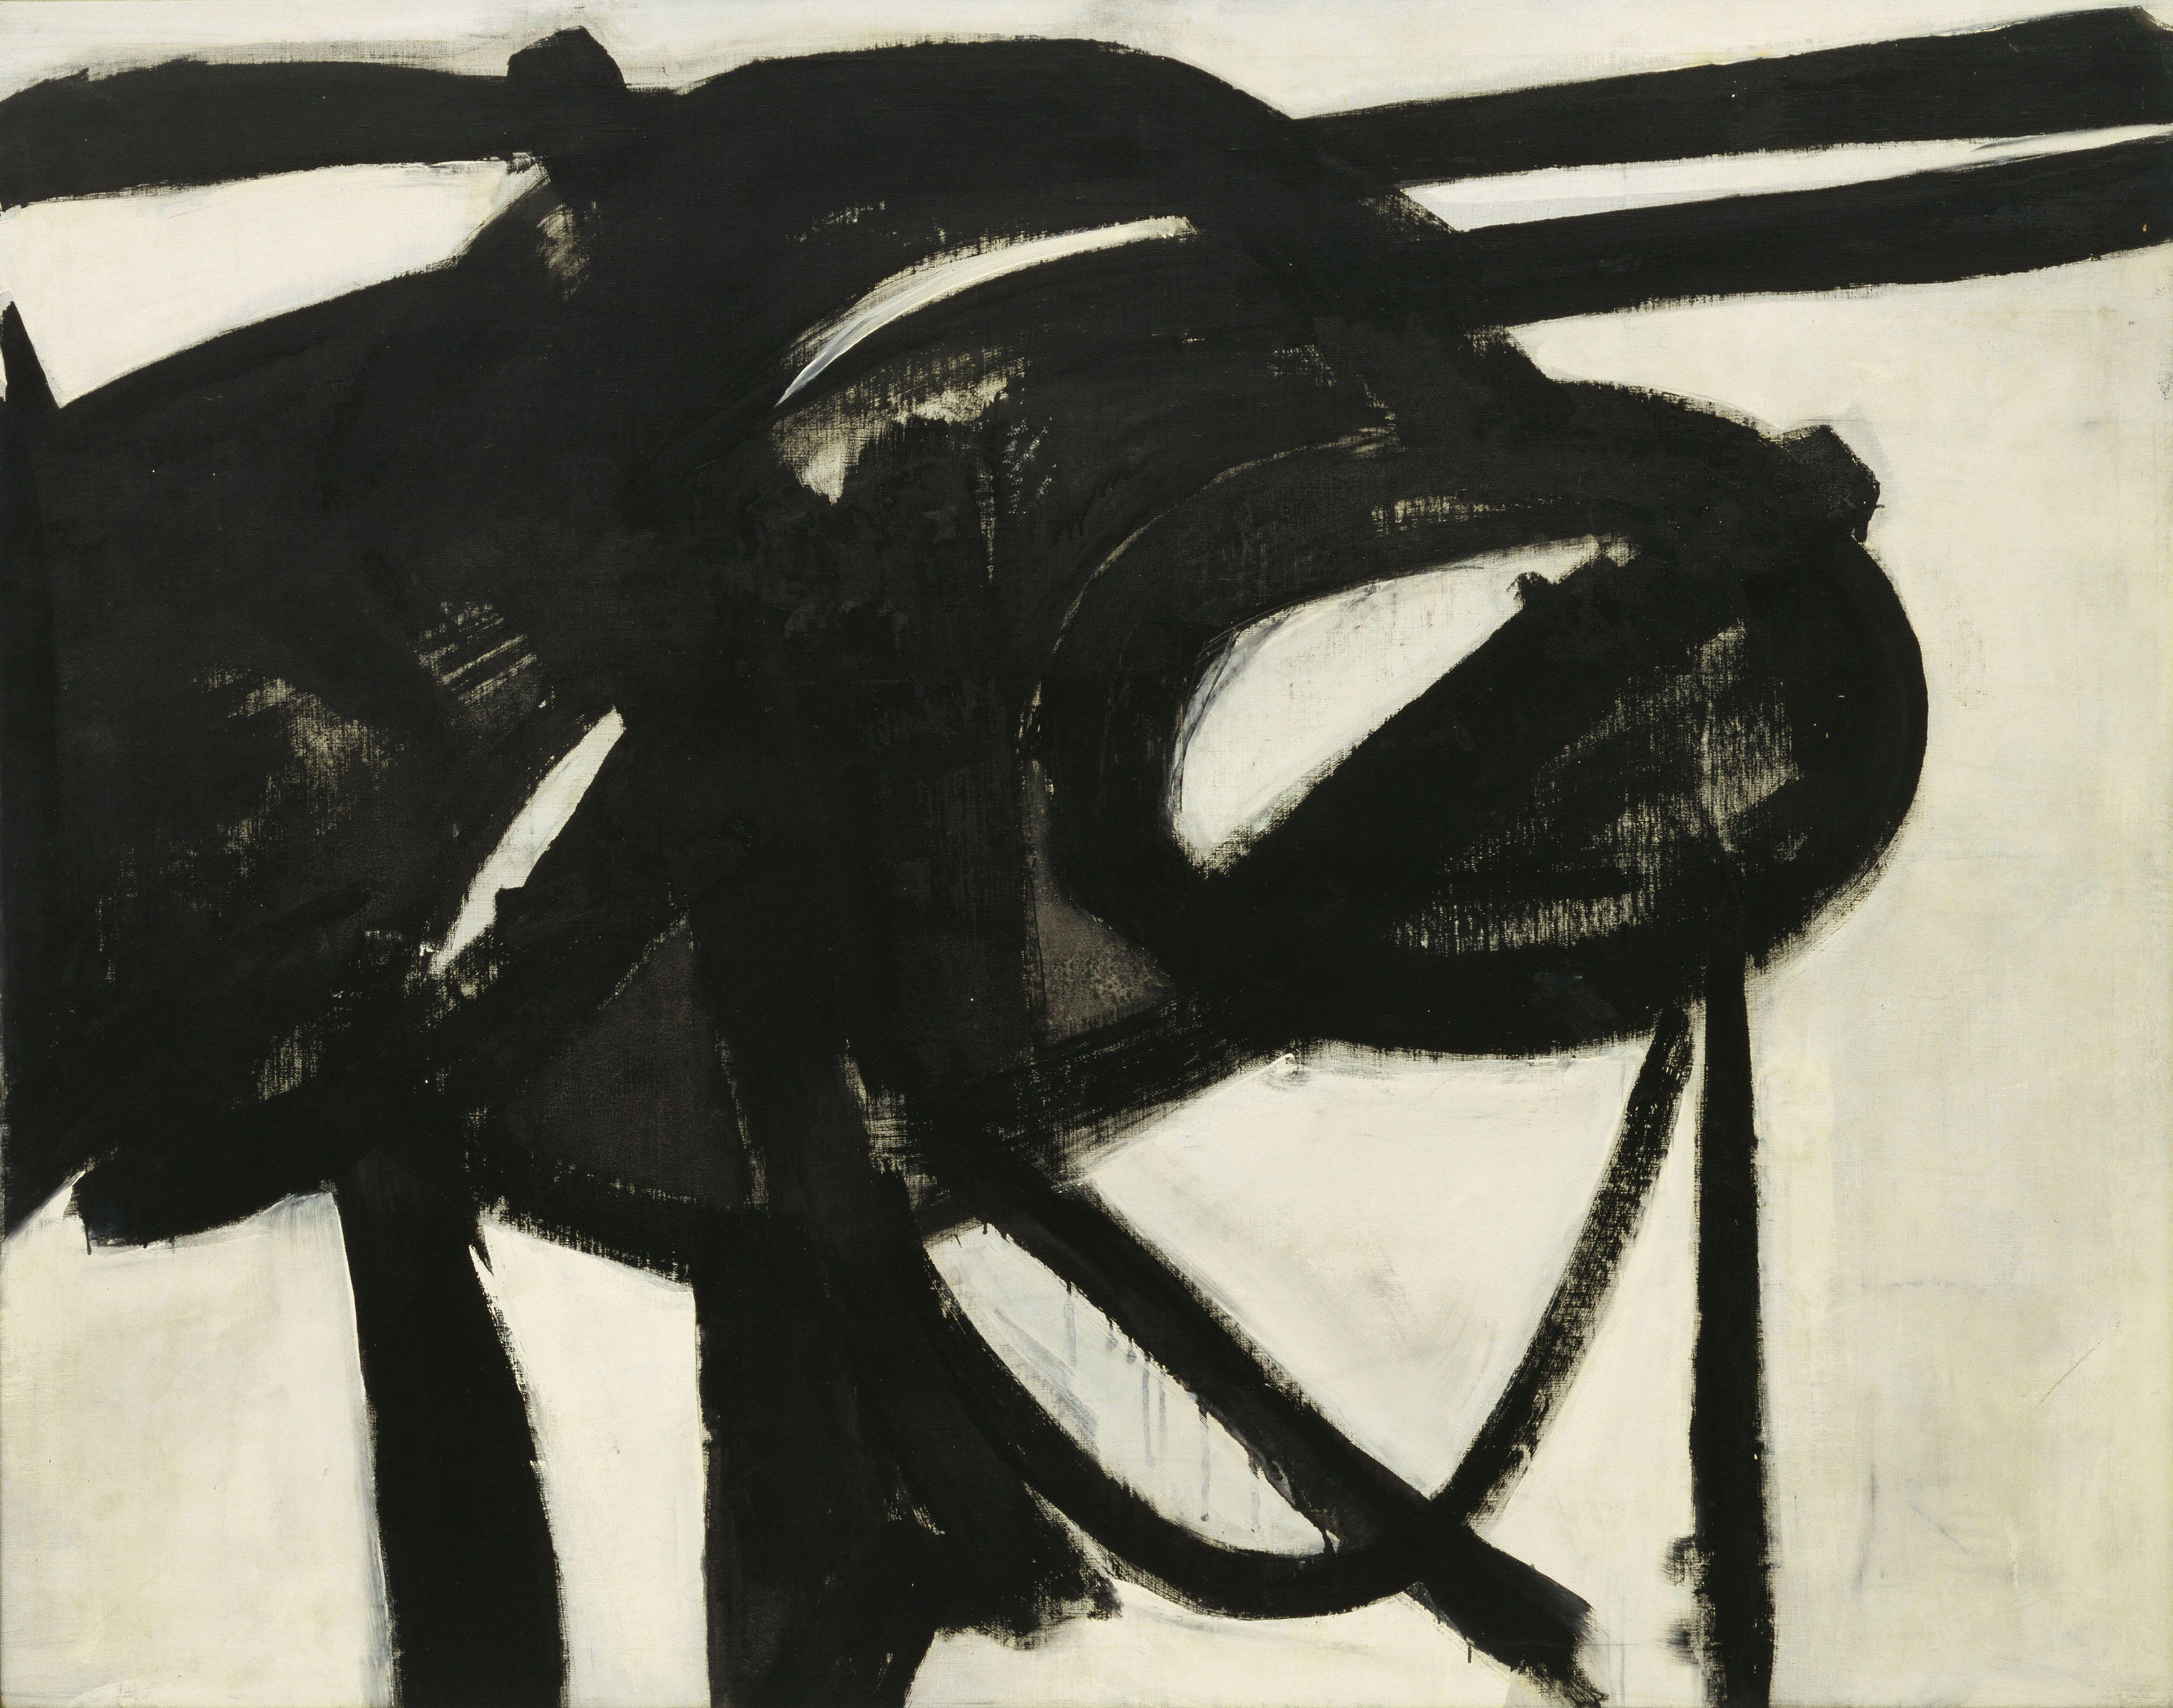 """Franz Kline, Chief, 1950, oil on canvas, 58 3/8"""" x 6' 1 1/2"""", Museum of Modern Art, New York, Photo via Wikimedia Commons, Creative Commons Attribution-Share Alike 3.0 Unported license."""